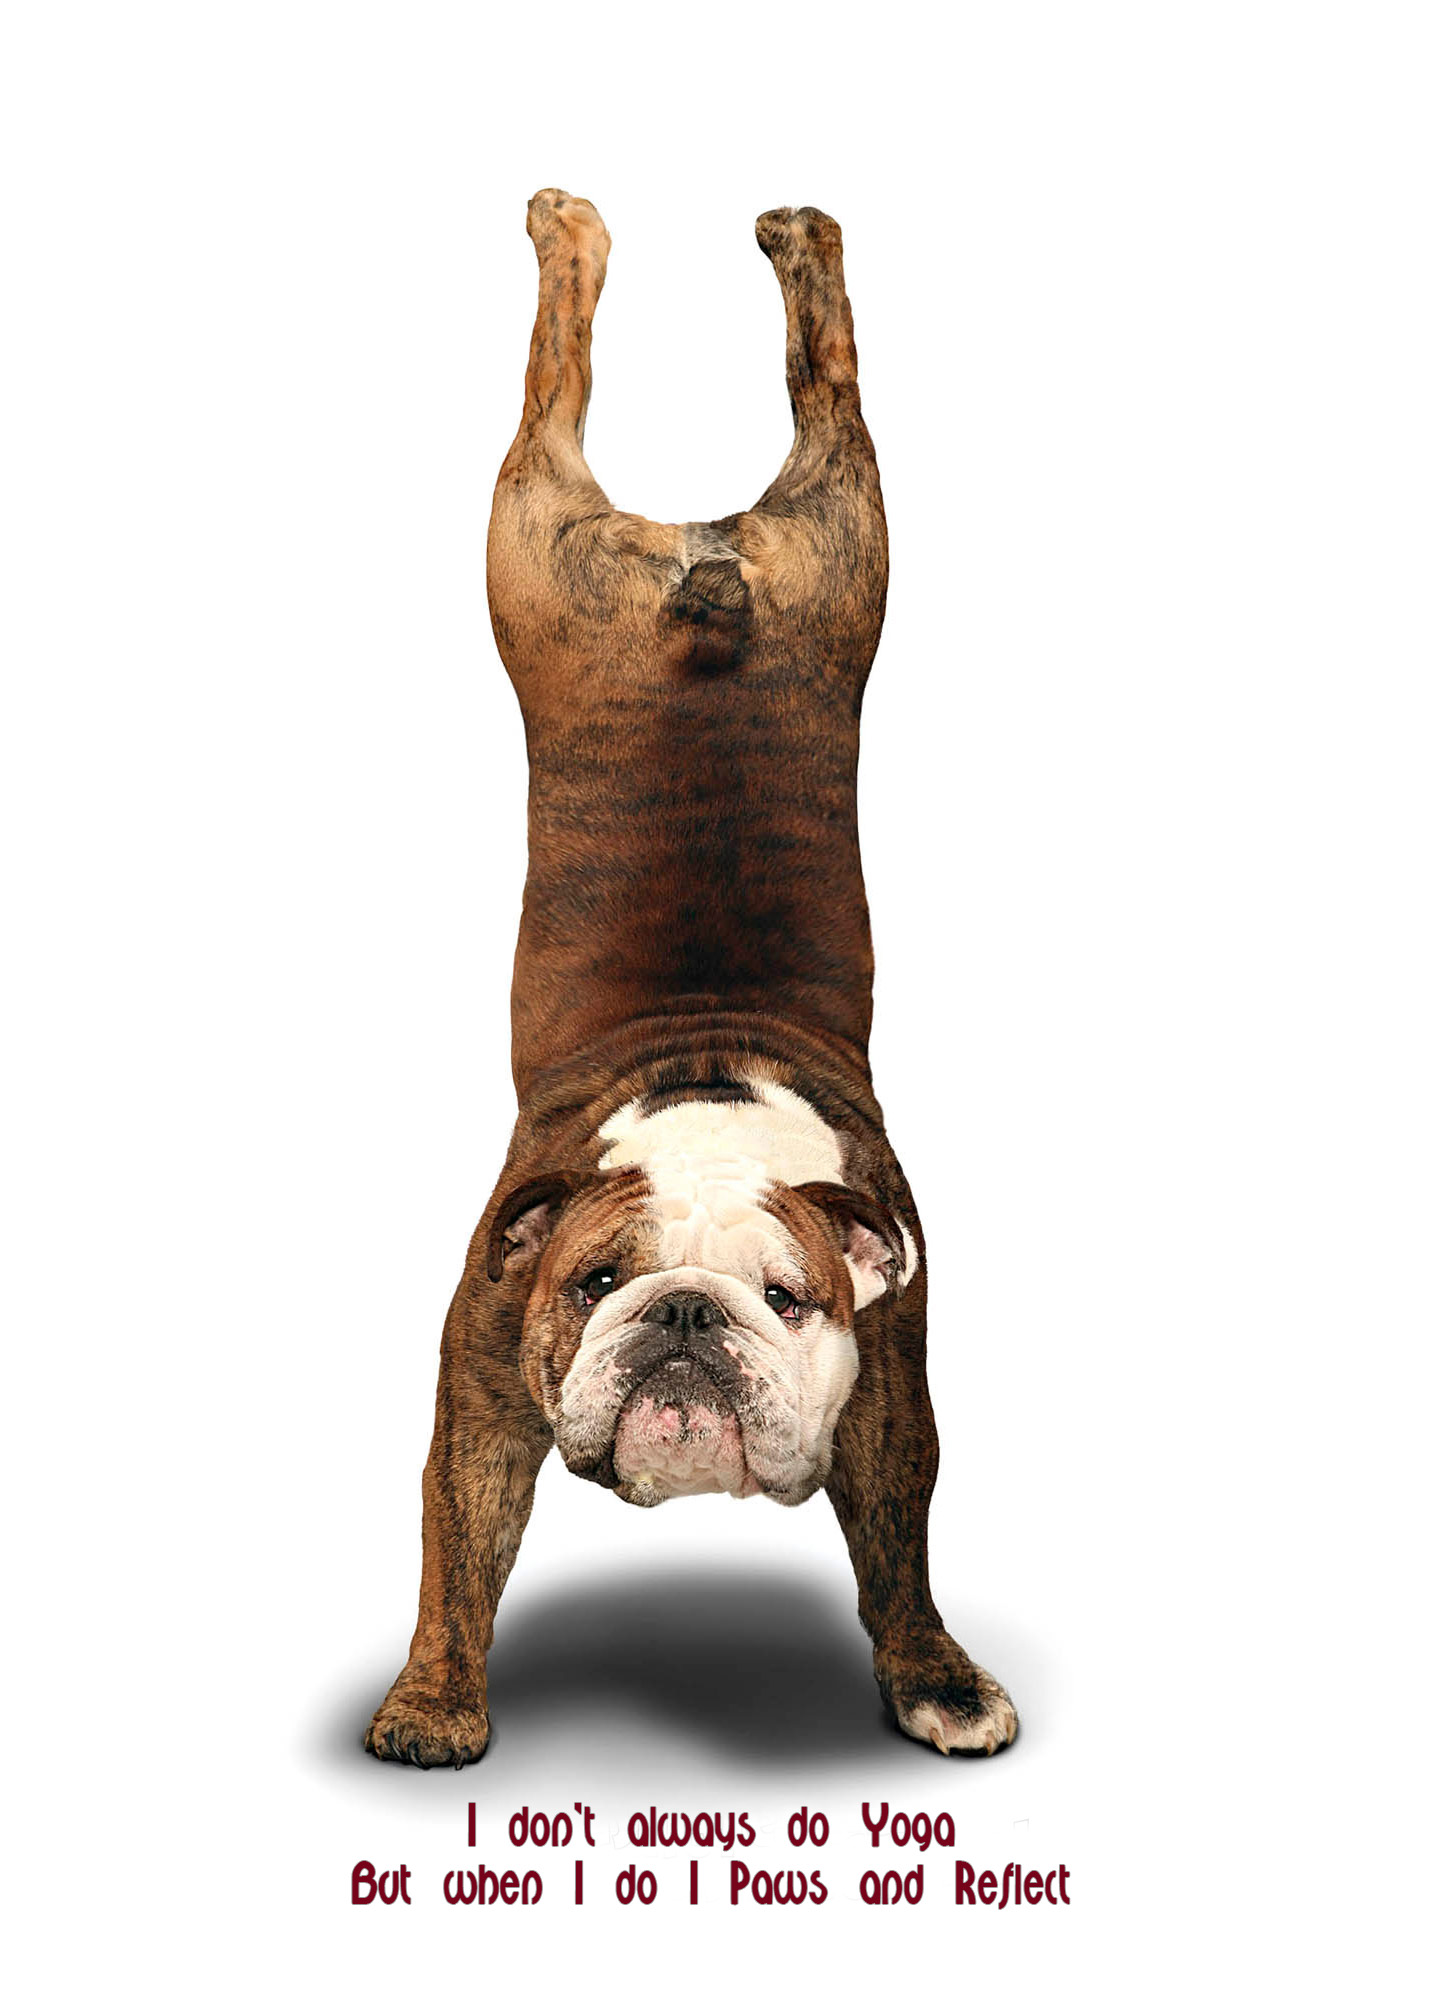 Bulldog Quotes Bulldog Yoga  Baggybulldogs